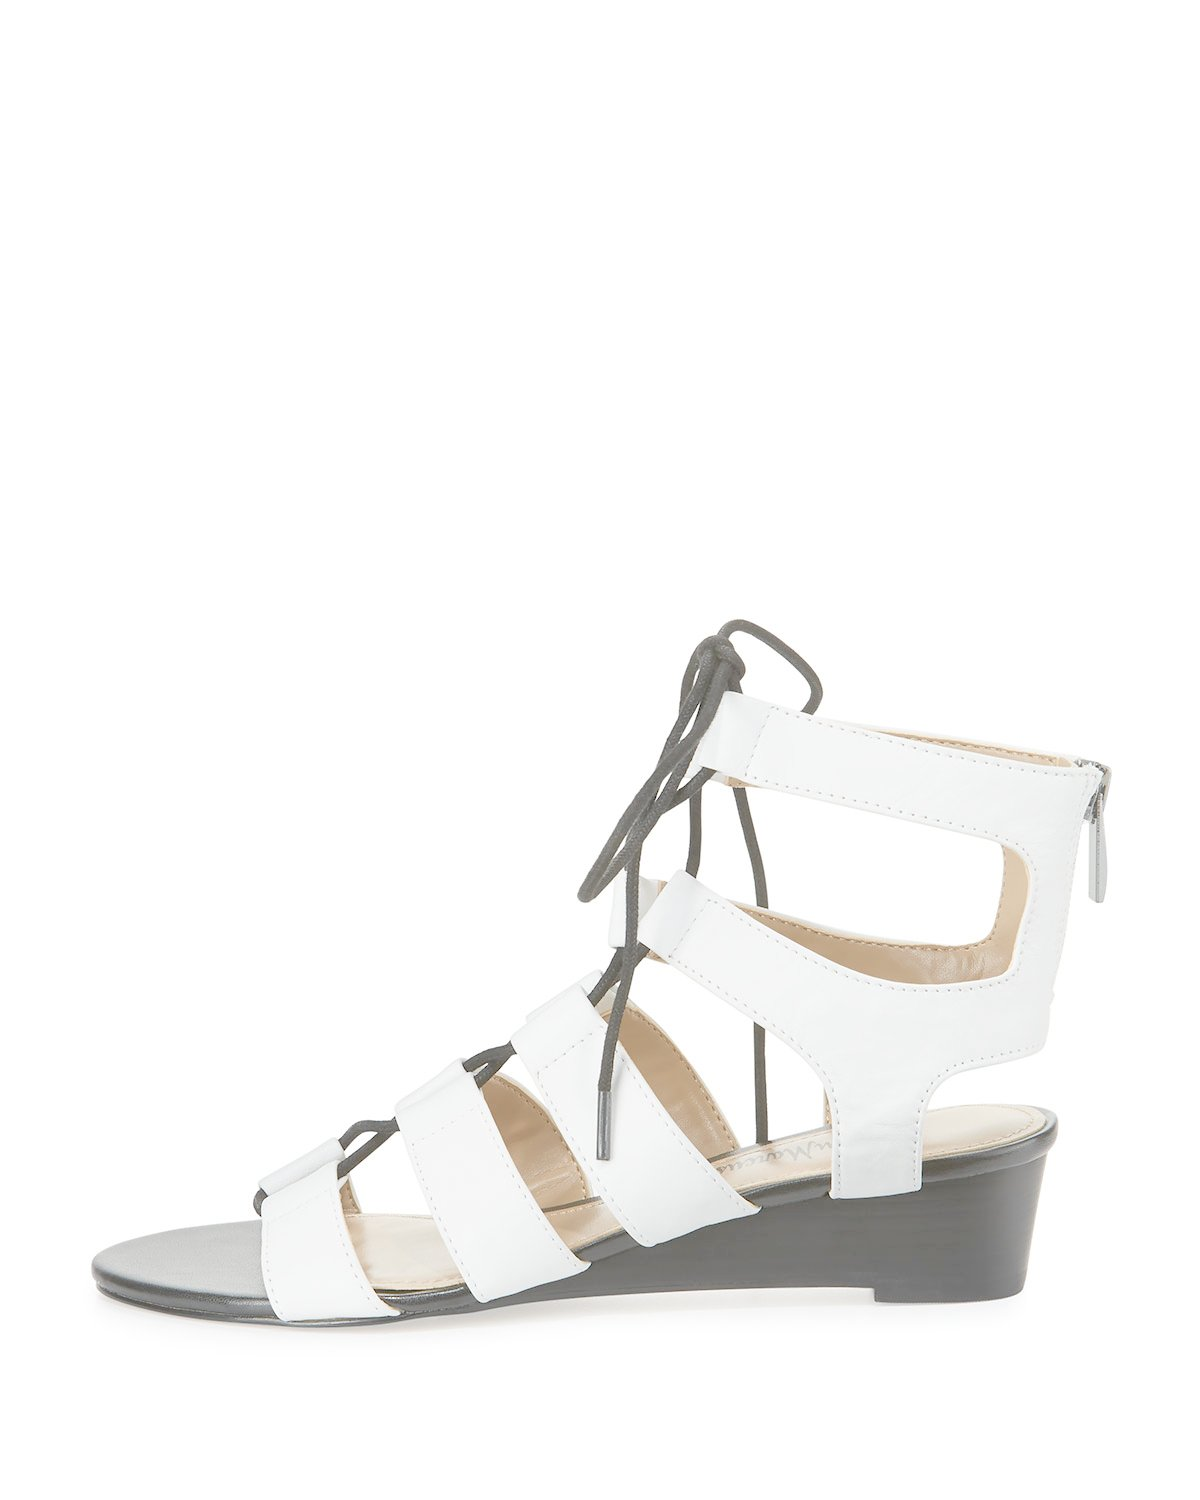 Neiman marcus Wista Leather Lace-up Sandal in White   Lyst